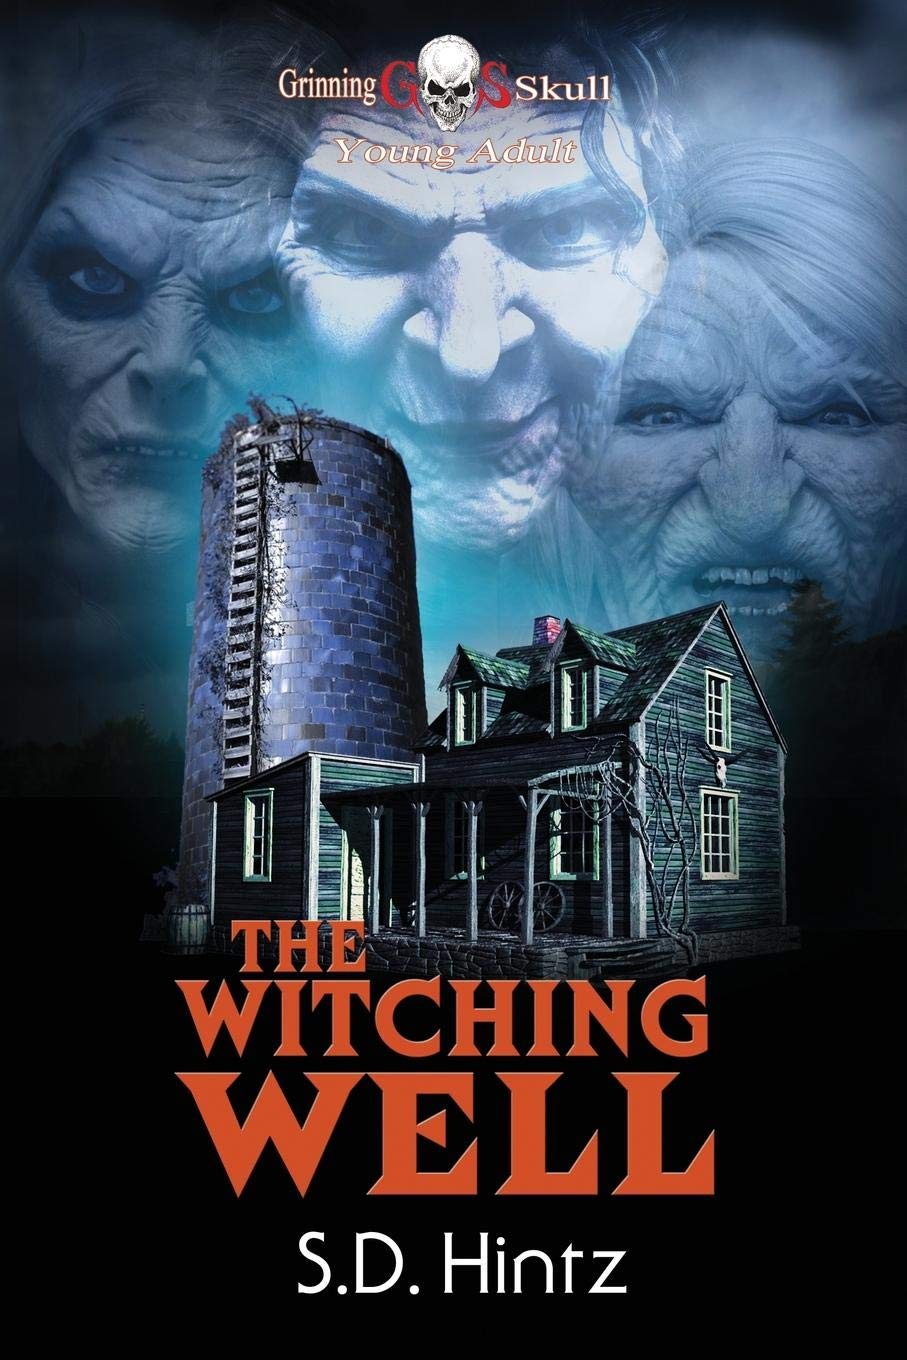 The Witching Well, by S.D. Hintz